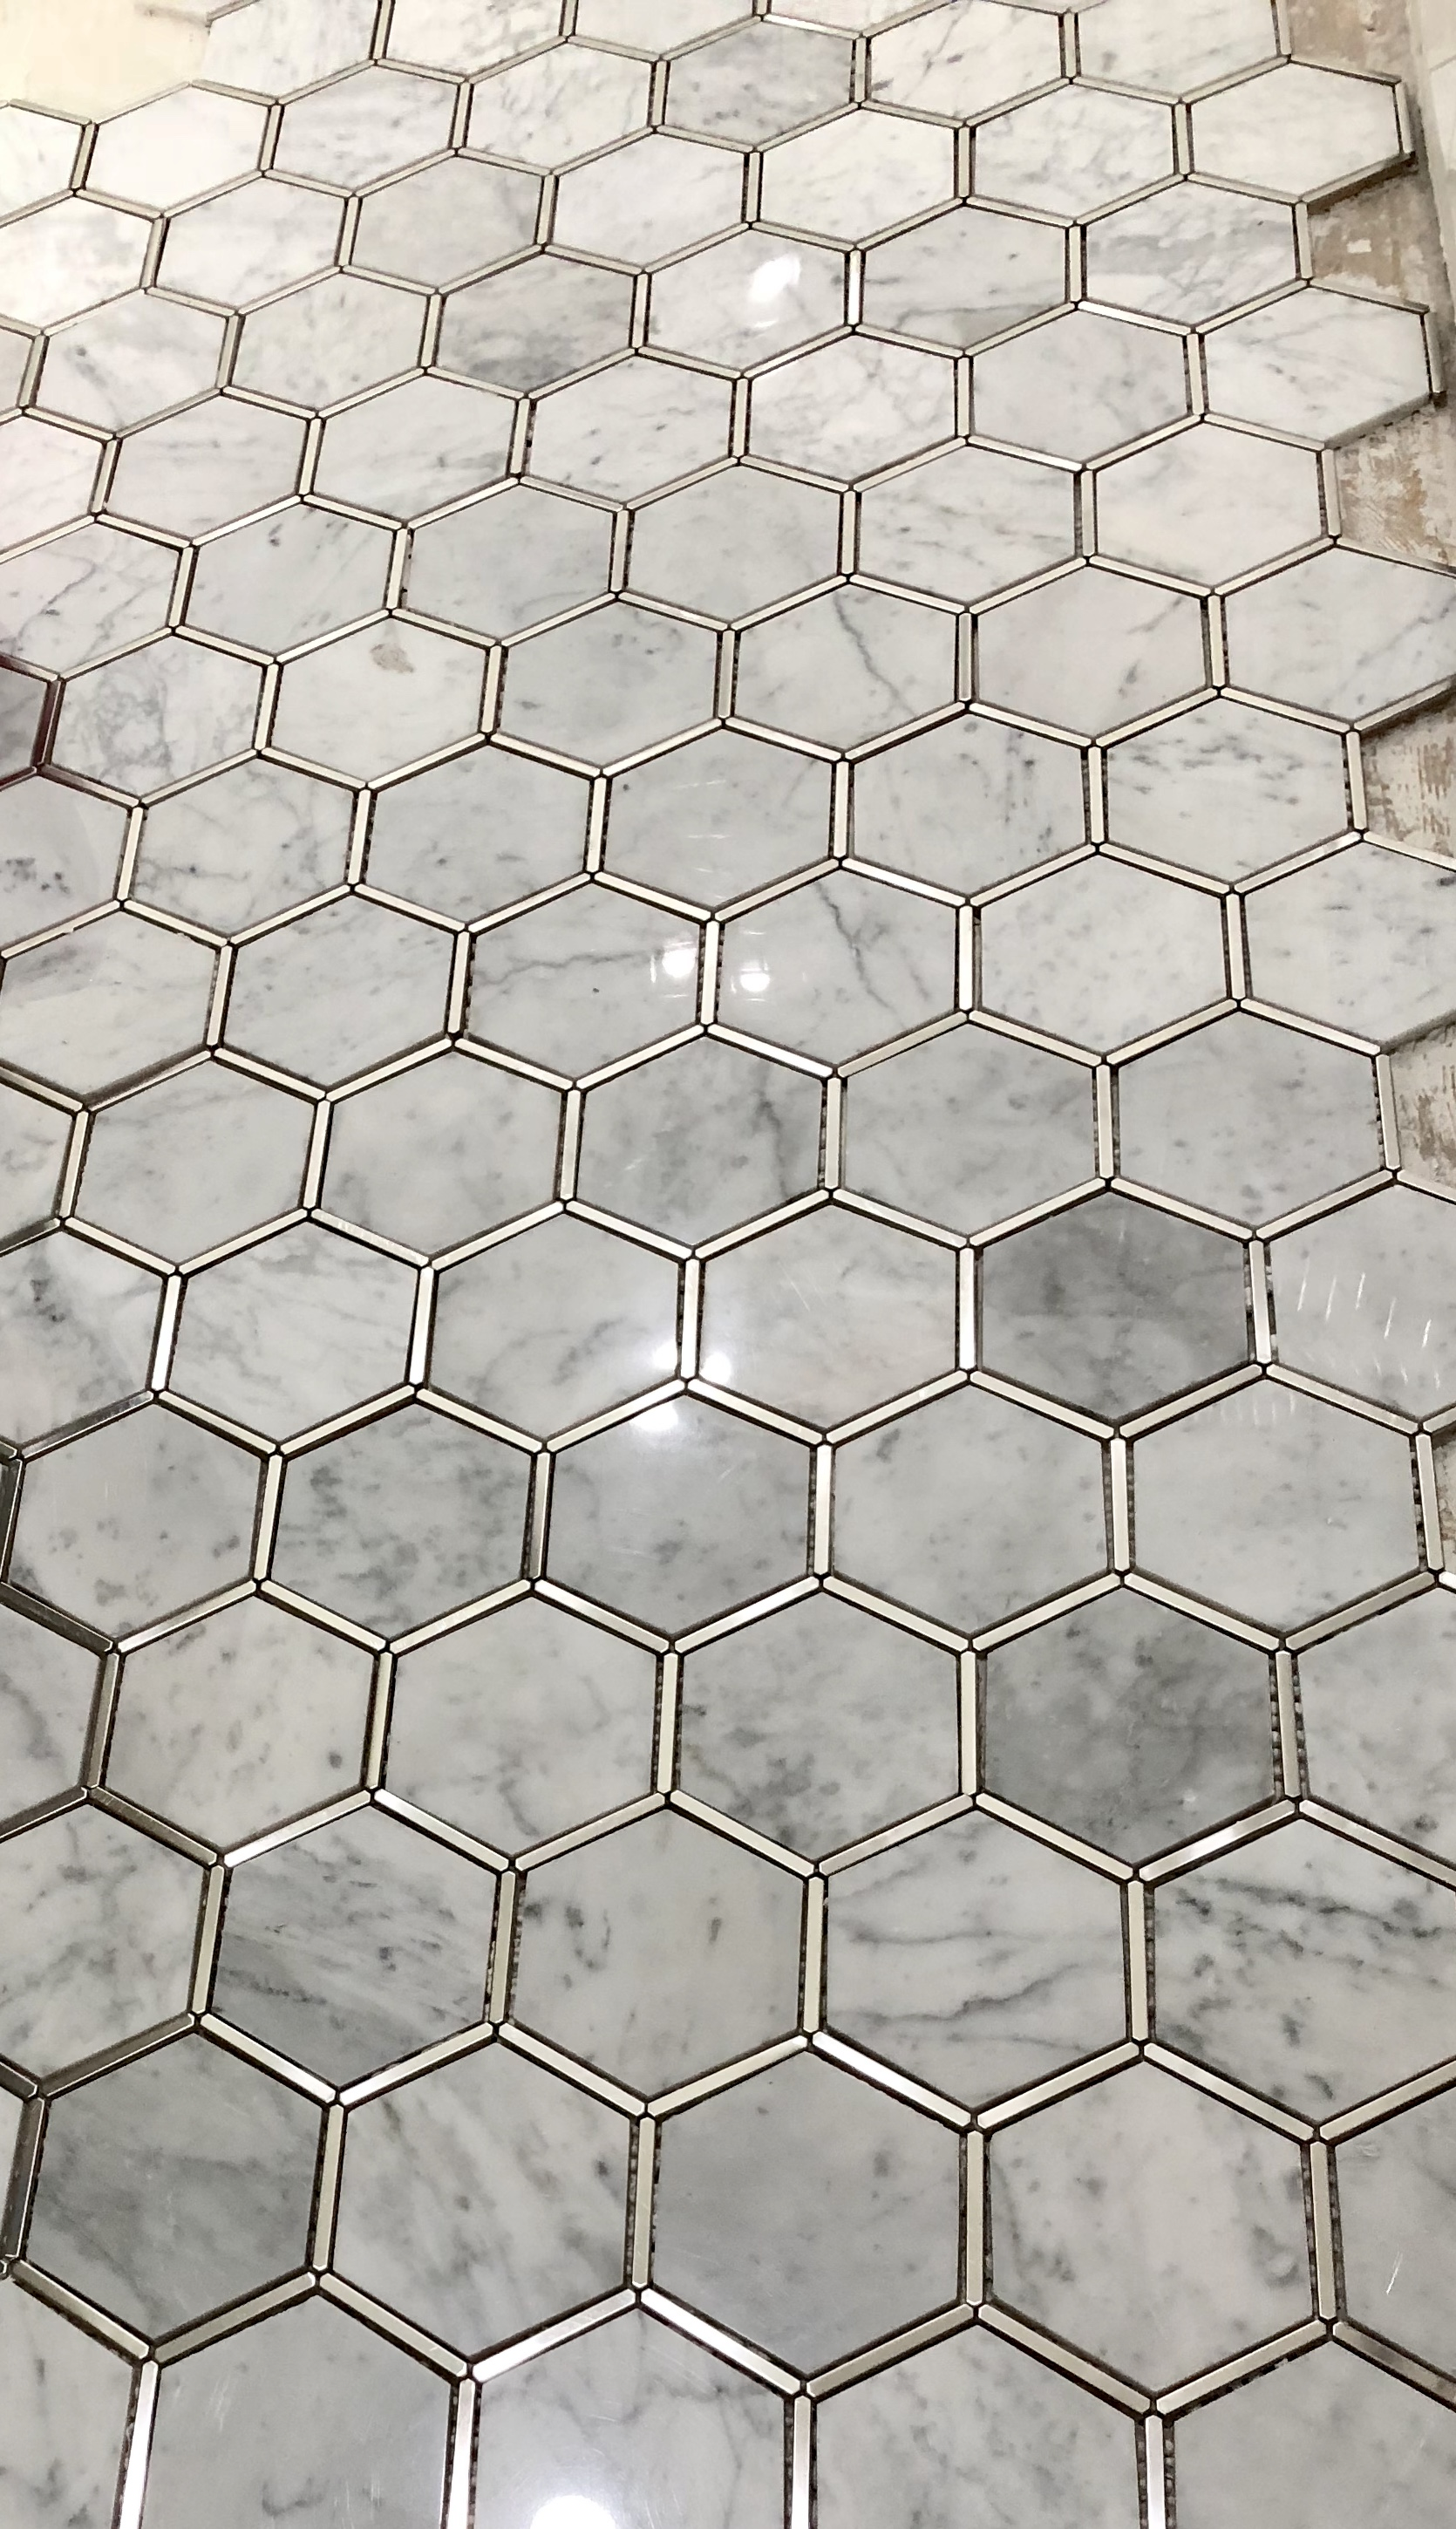 Can't wait to see how this looks once it's grouted!